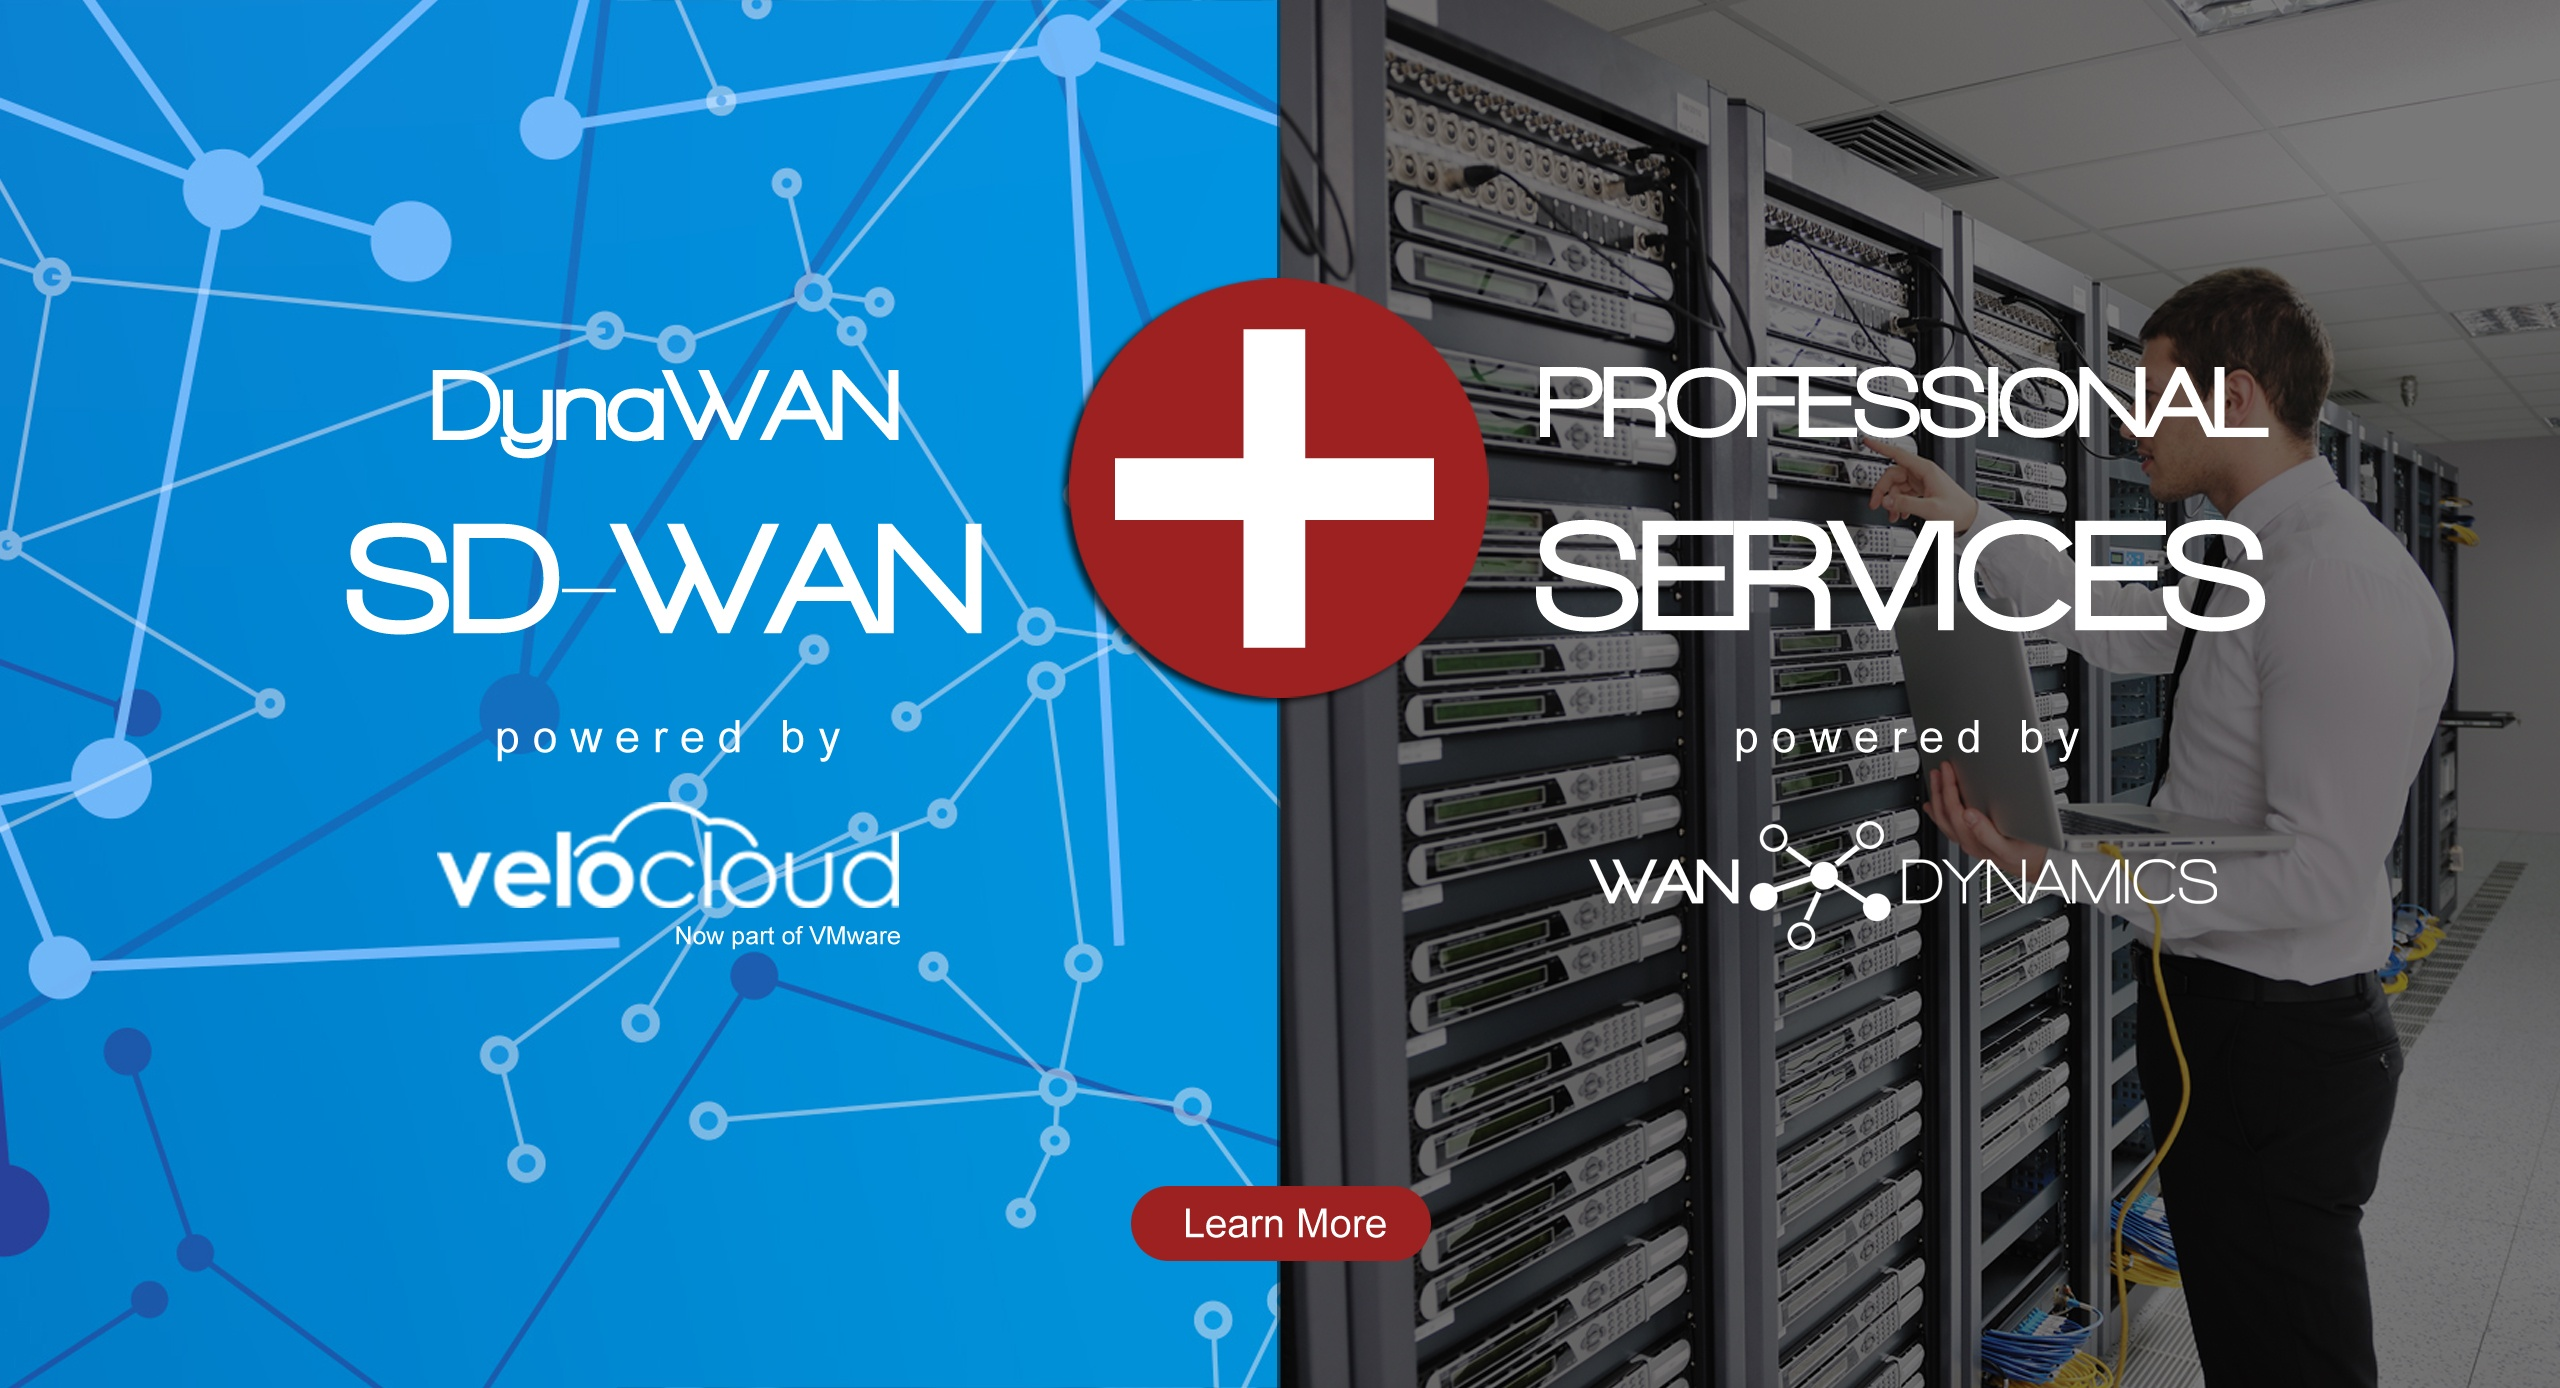 sd-wan-pro-services